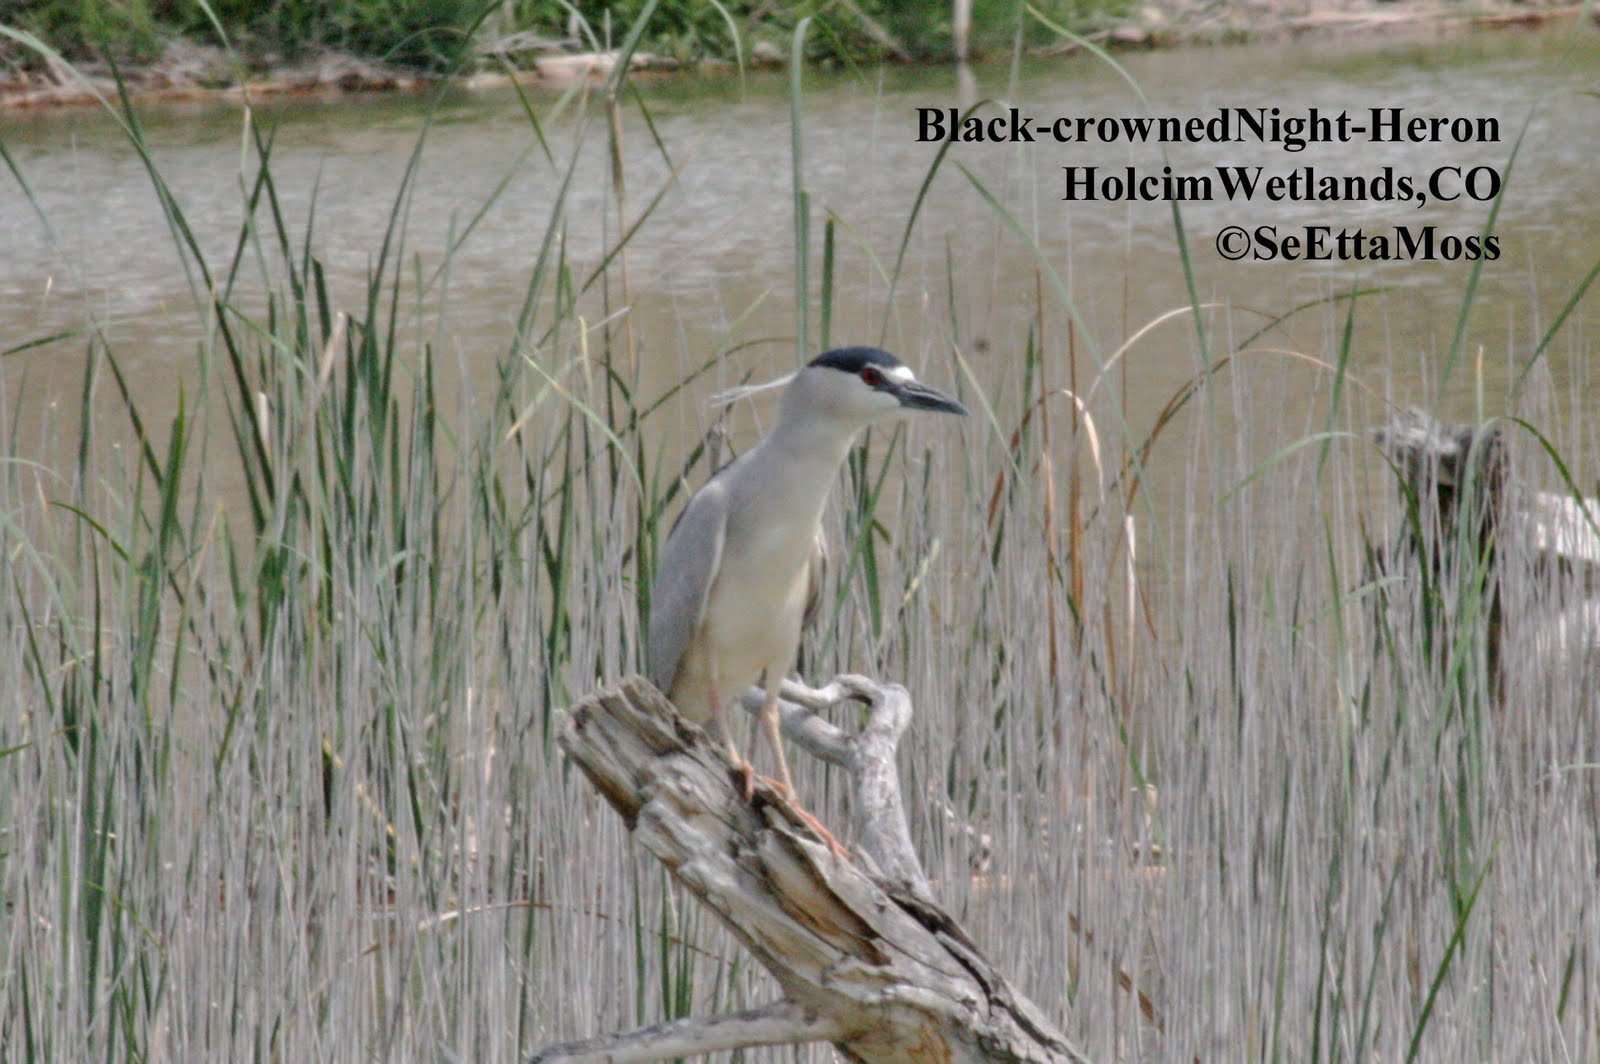 BCNHeron a2 HolcimWet Related topics: shrunken head, shrunken heads, head, heads, wife, wives, ...